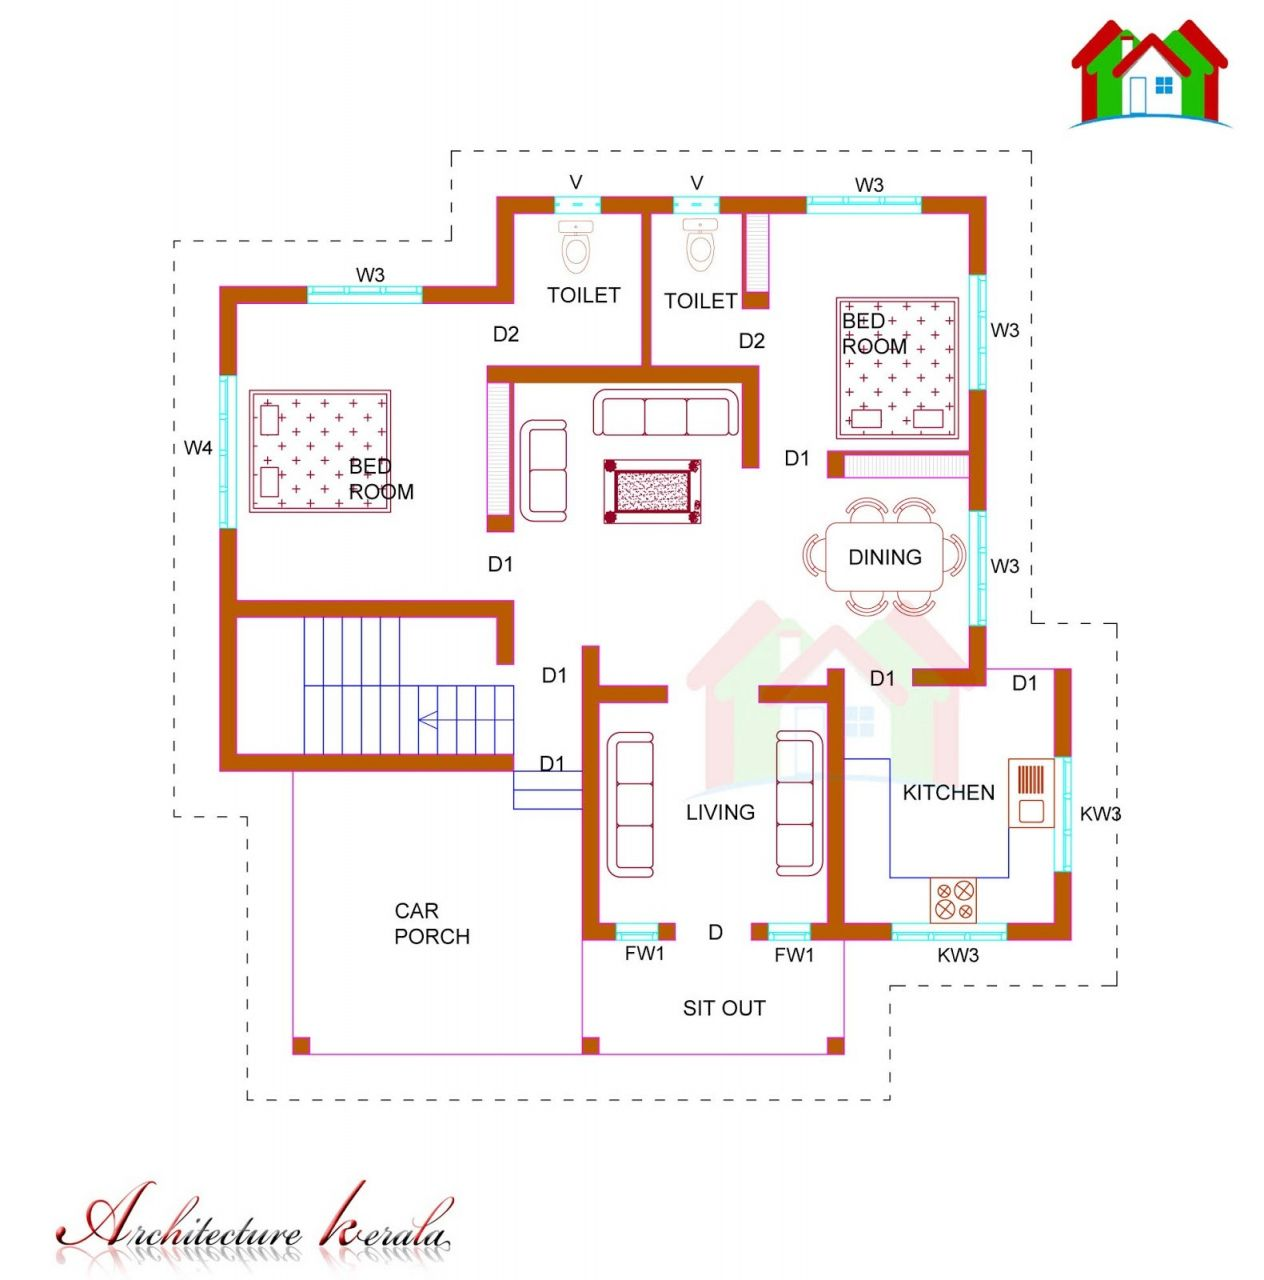 201 Kerala Small House Plans Free Download 2017 Small House Plans Free Small House Plans House Design Pictures